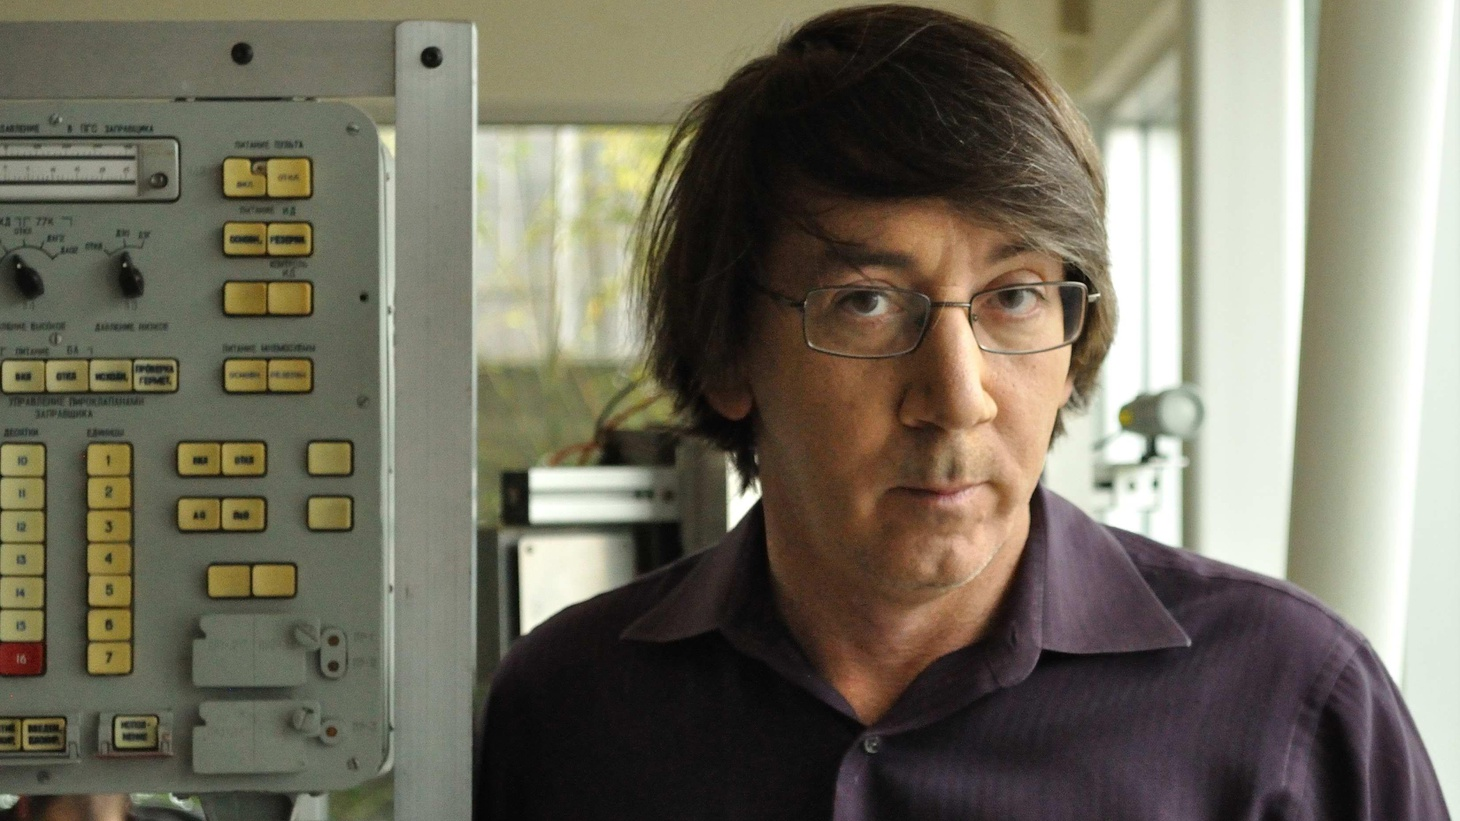 Video game designer Will Wright changed the entire landscape of gaming with his hit game Sim City, and follow up The Sims and Spore. It's clear he looks at the world with a unique point of view and that is reflected in his song choices – whether contemplating how robots reflect humanity, his favorite Bond theme song or the most beautiful concept album ever made.